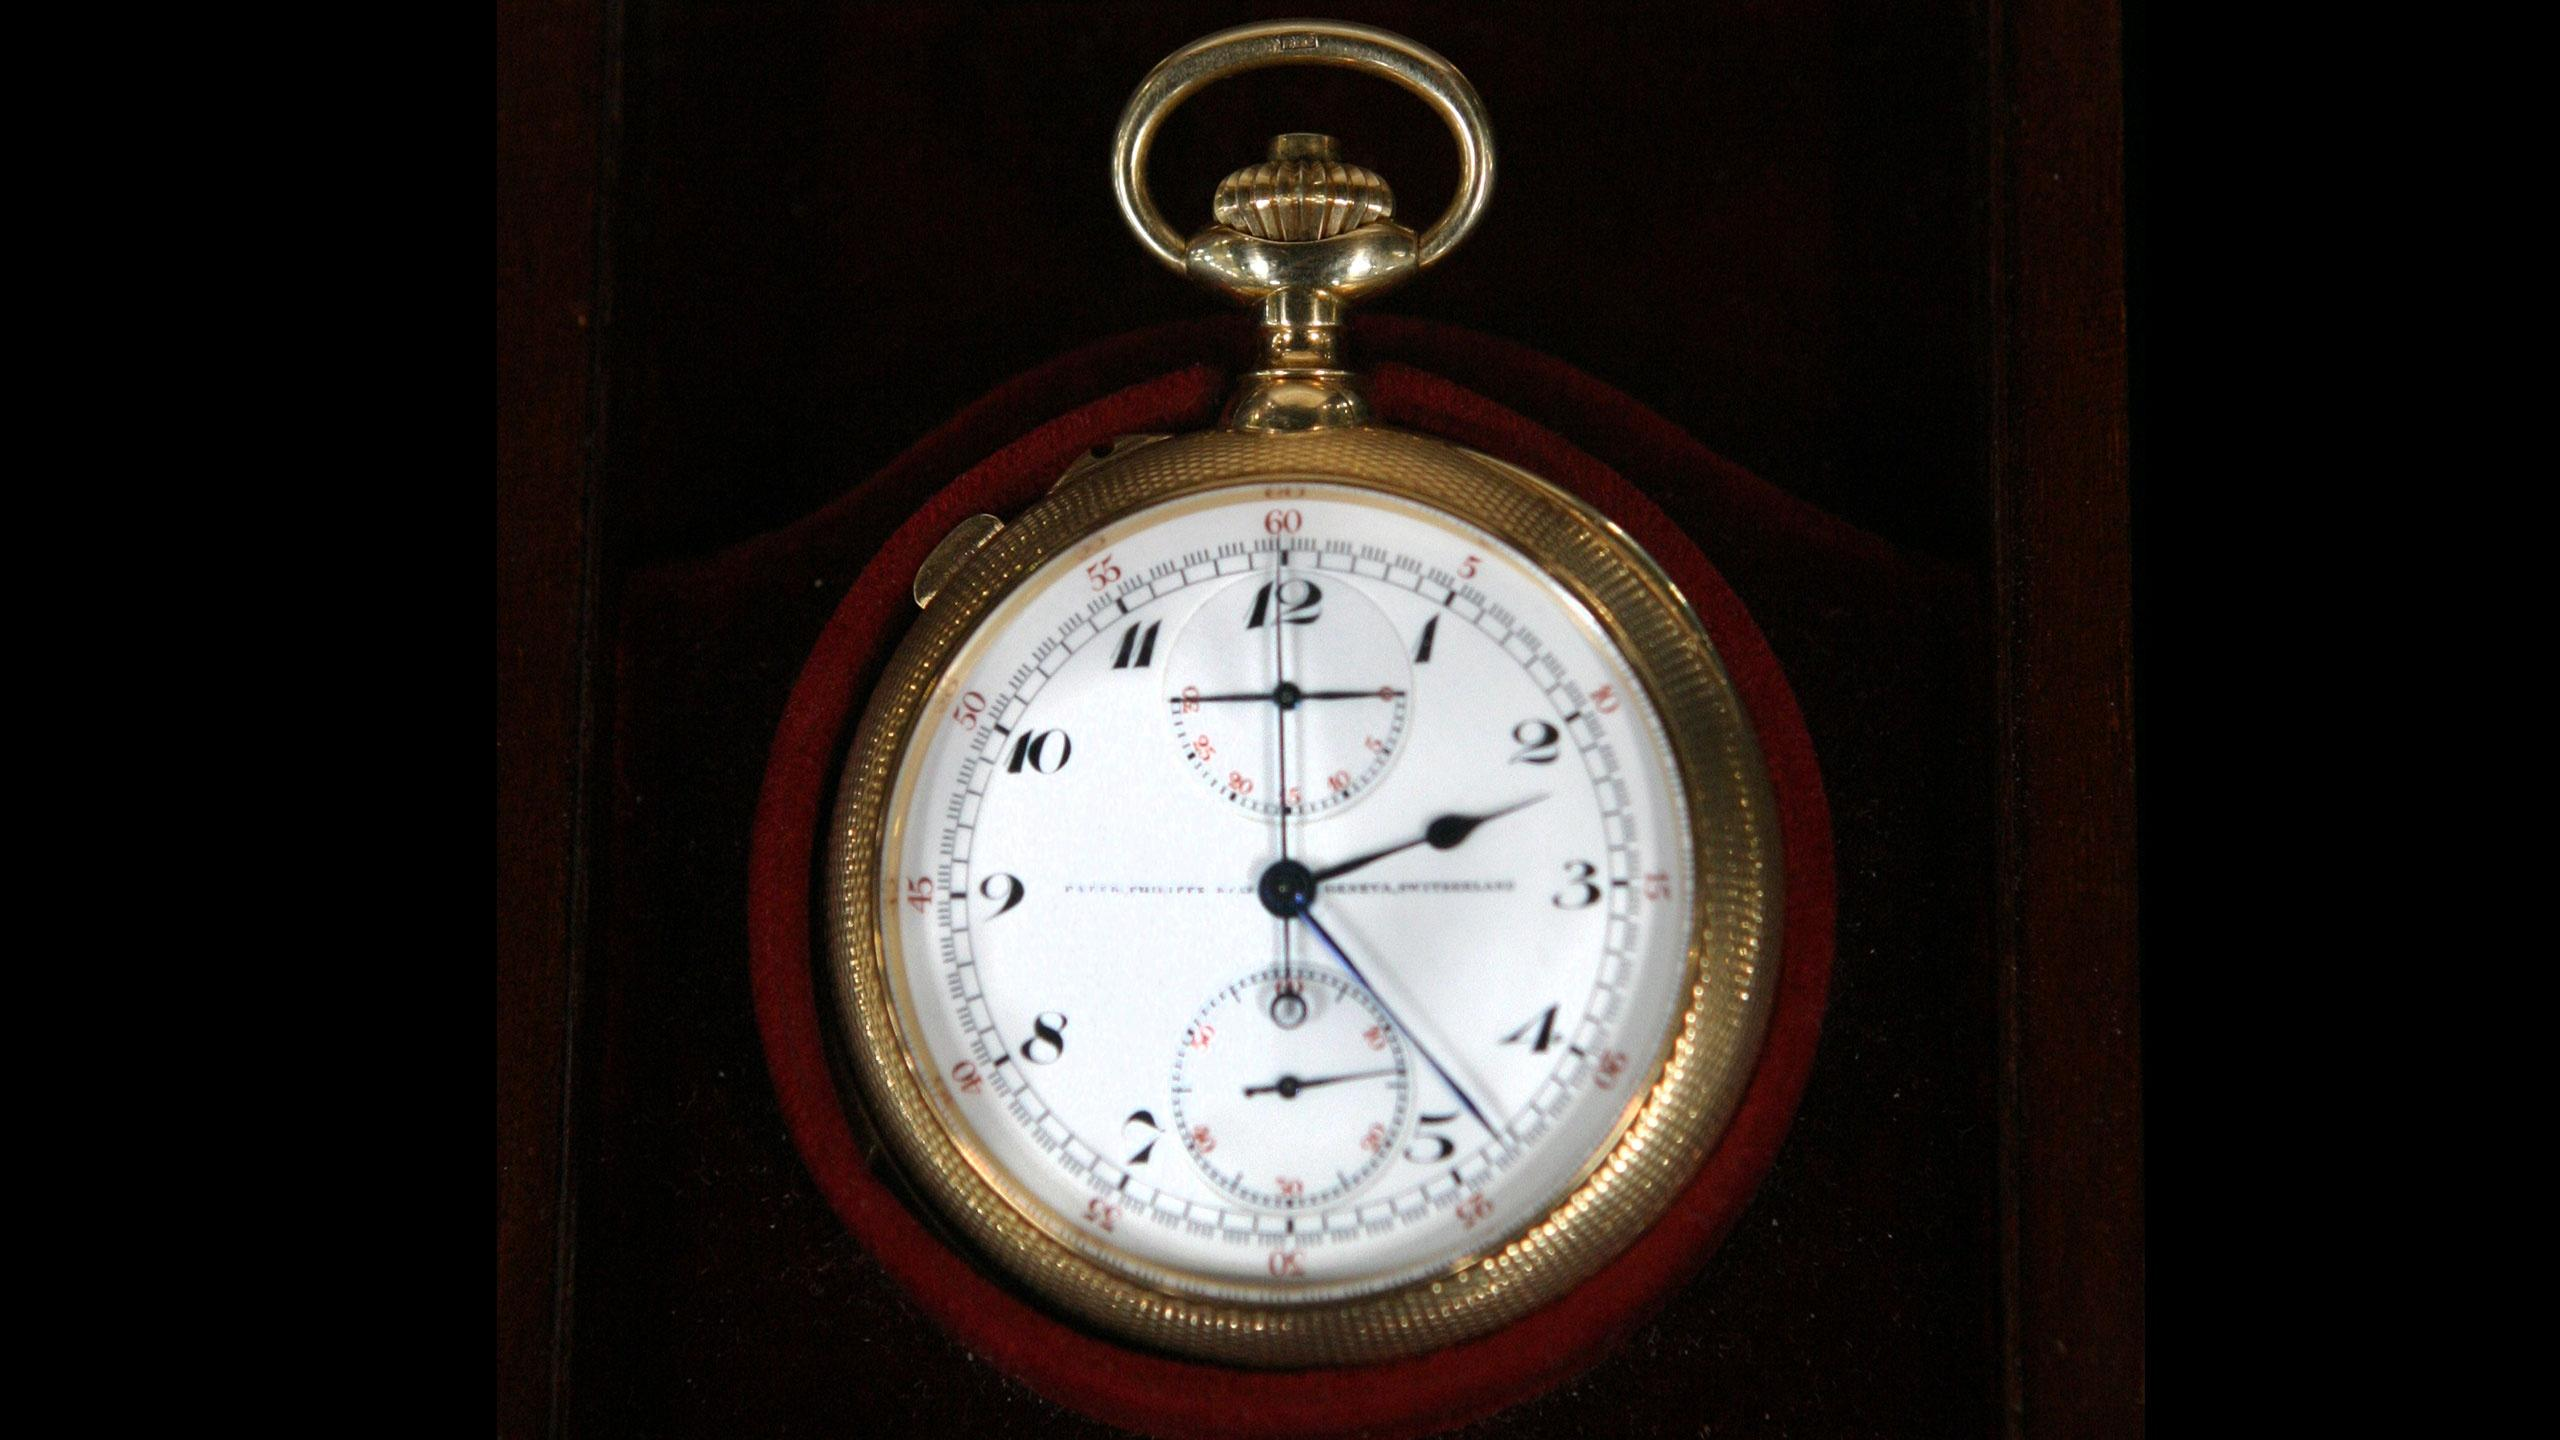 1914 Patek Philippe Pocket Watch